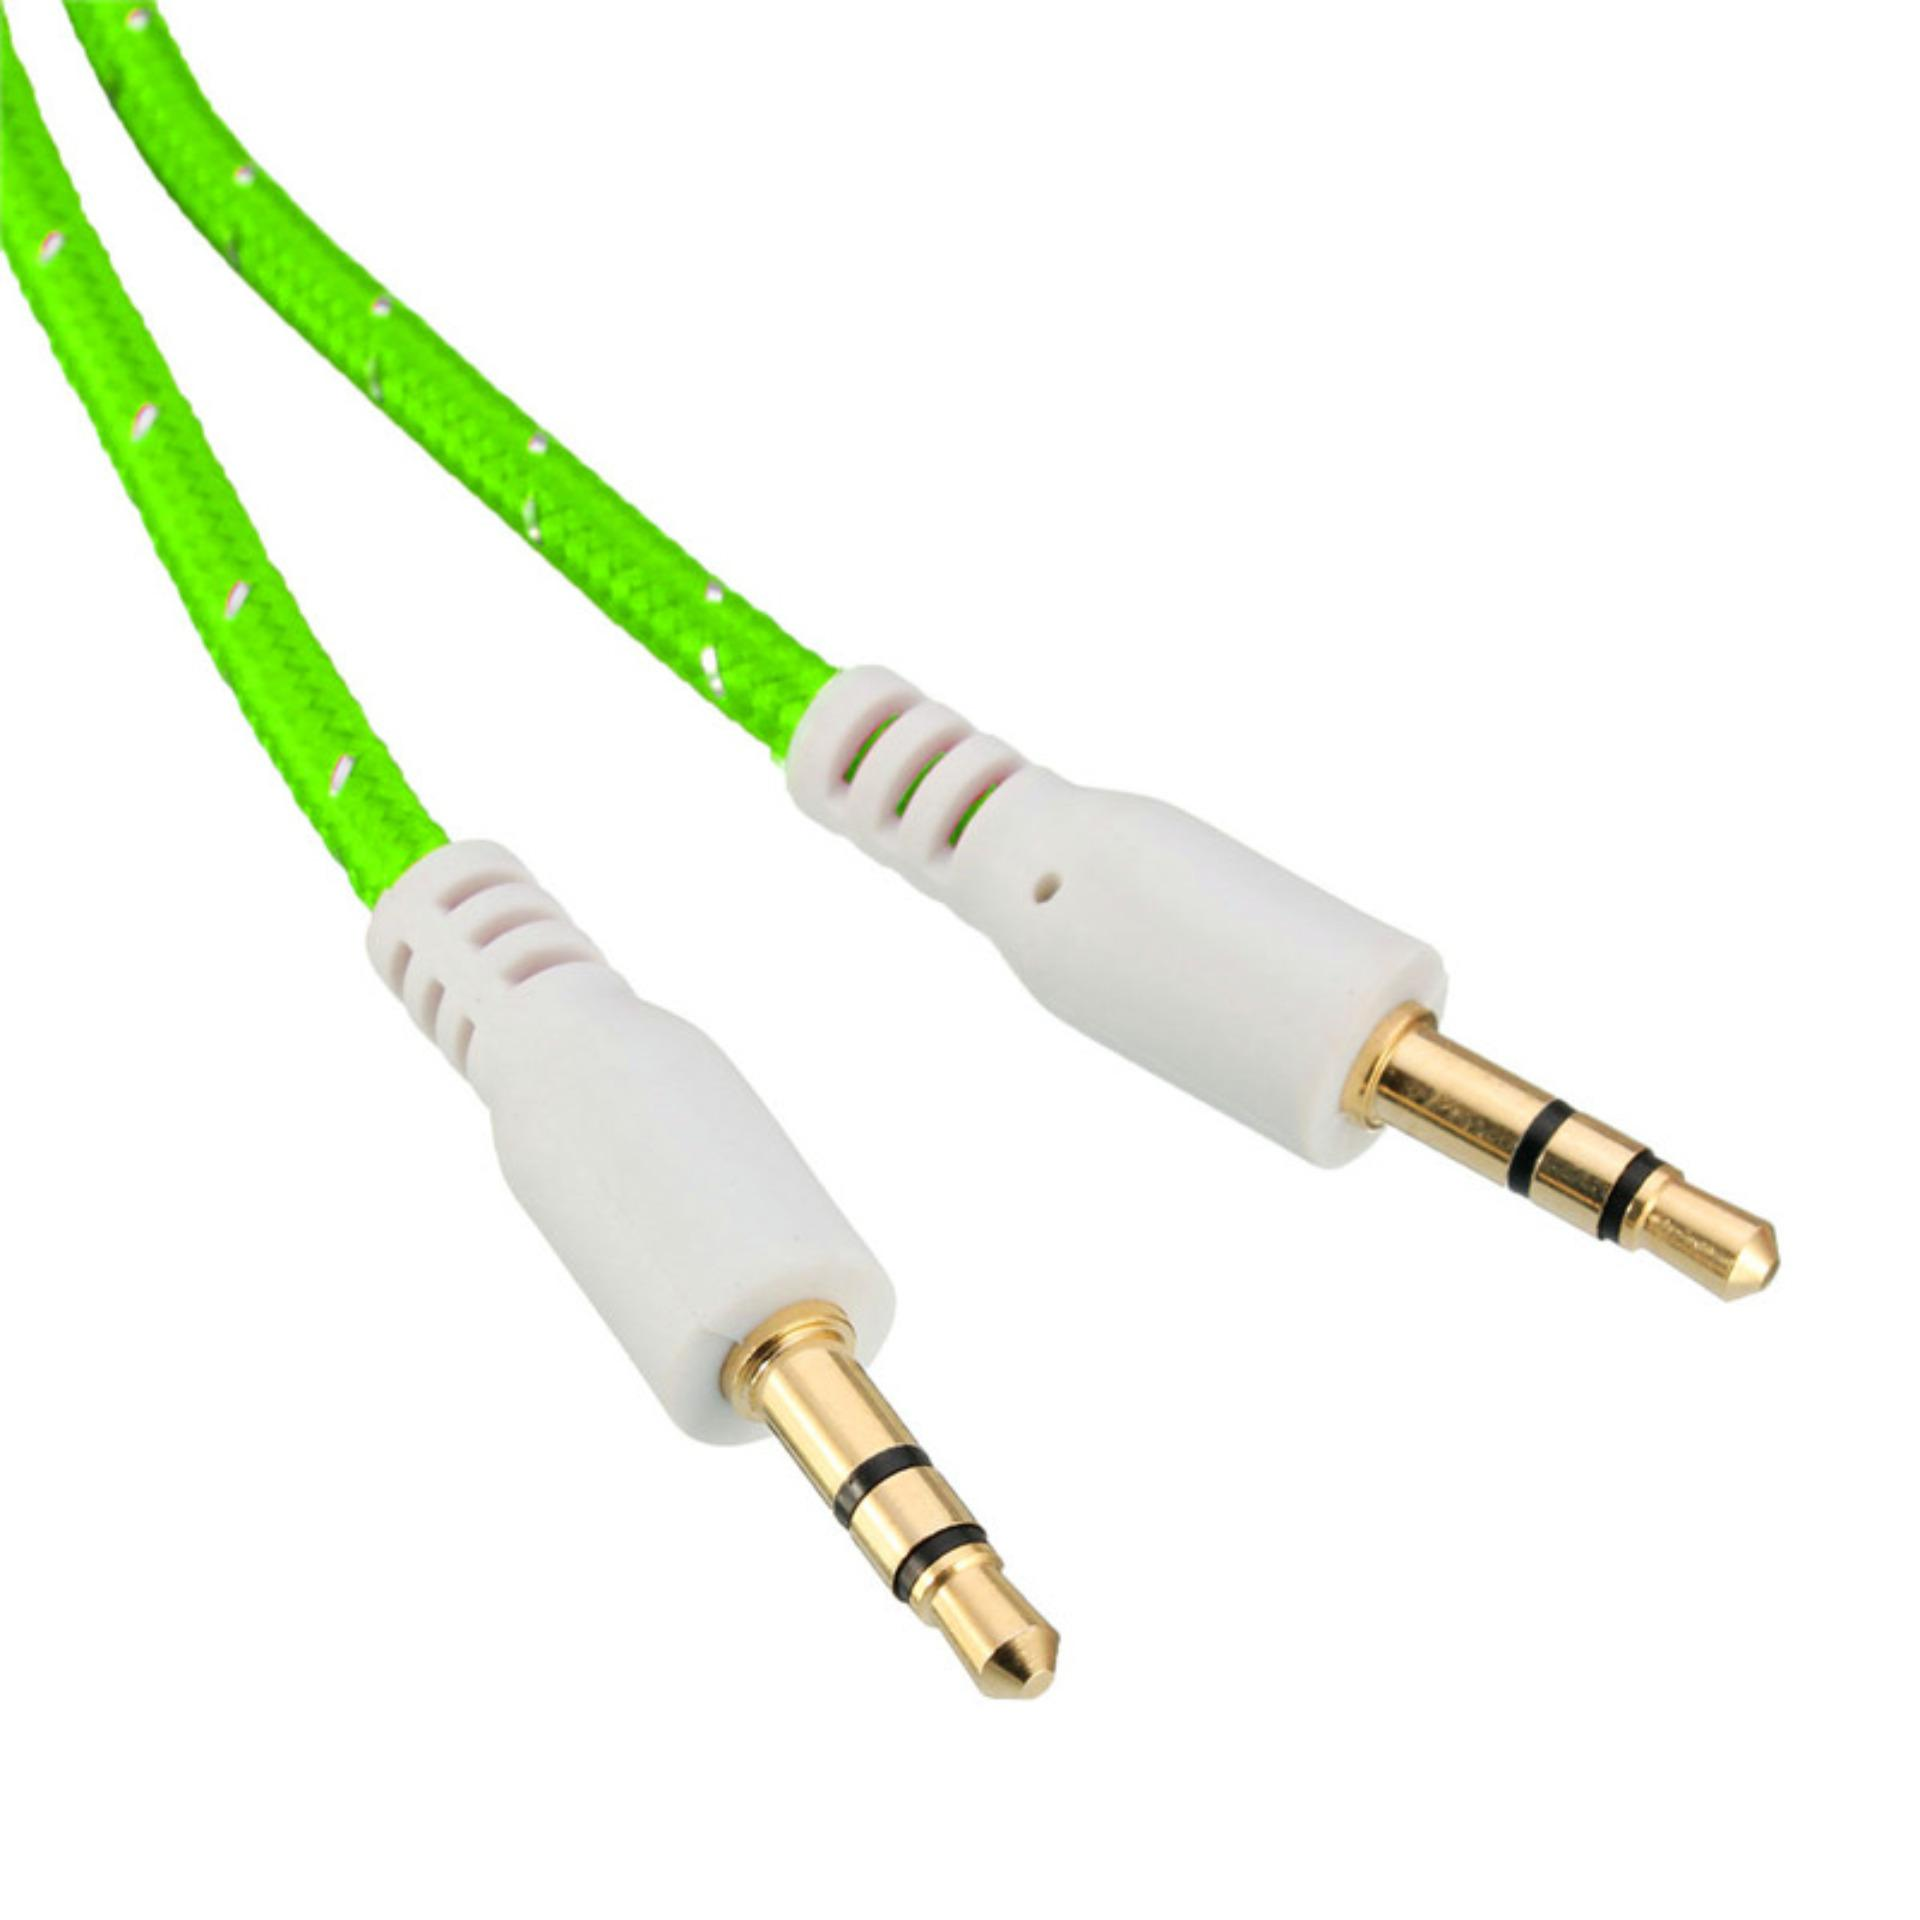 KABEL AUDIO HP KE SPEAKER 1 KE 1 JACK 35MM Source . Source · Kabel Aux Bulat 3.5mm Jack Tali Sepatu - Hijau + Gratis 1 .